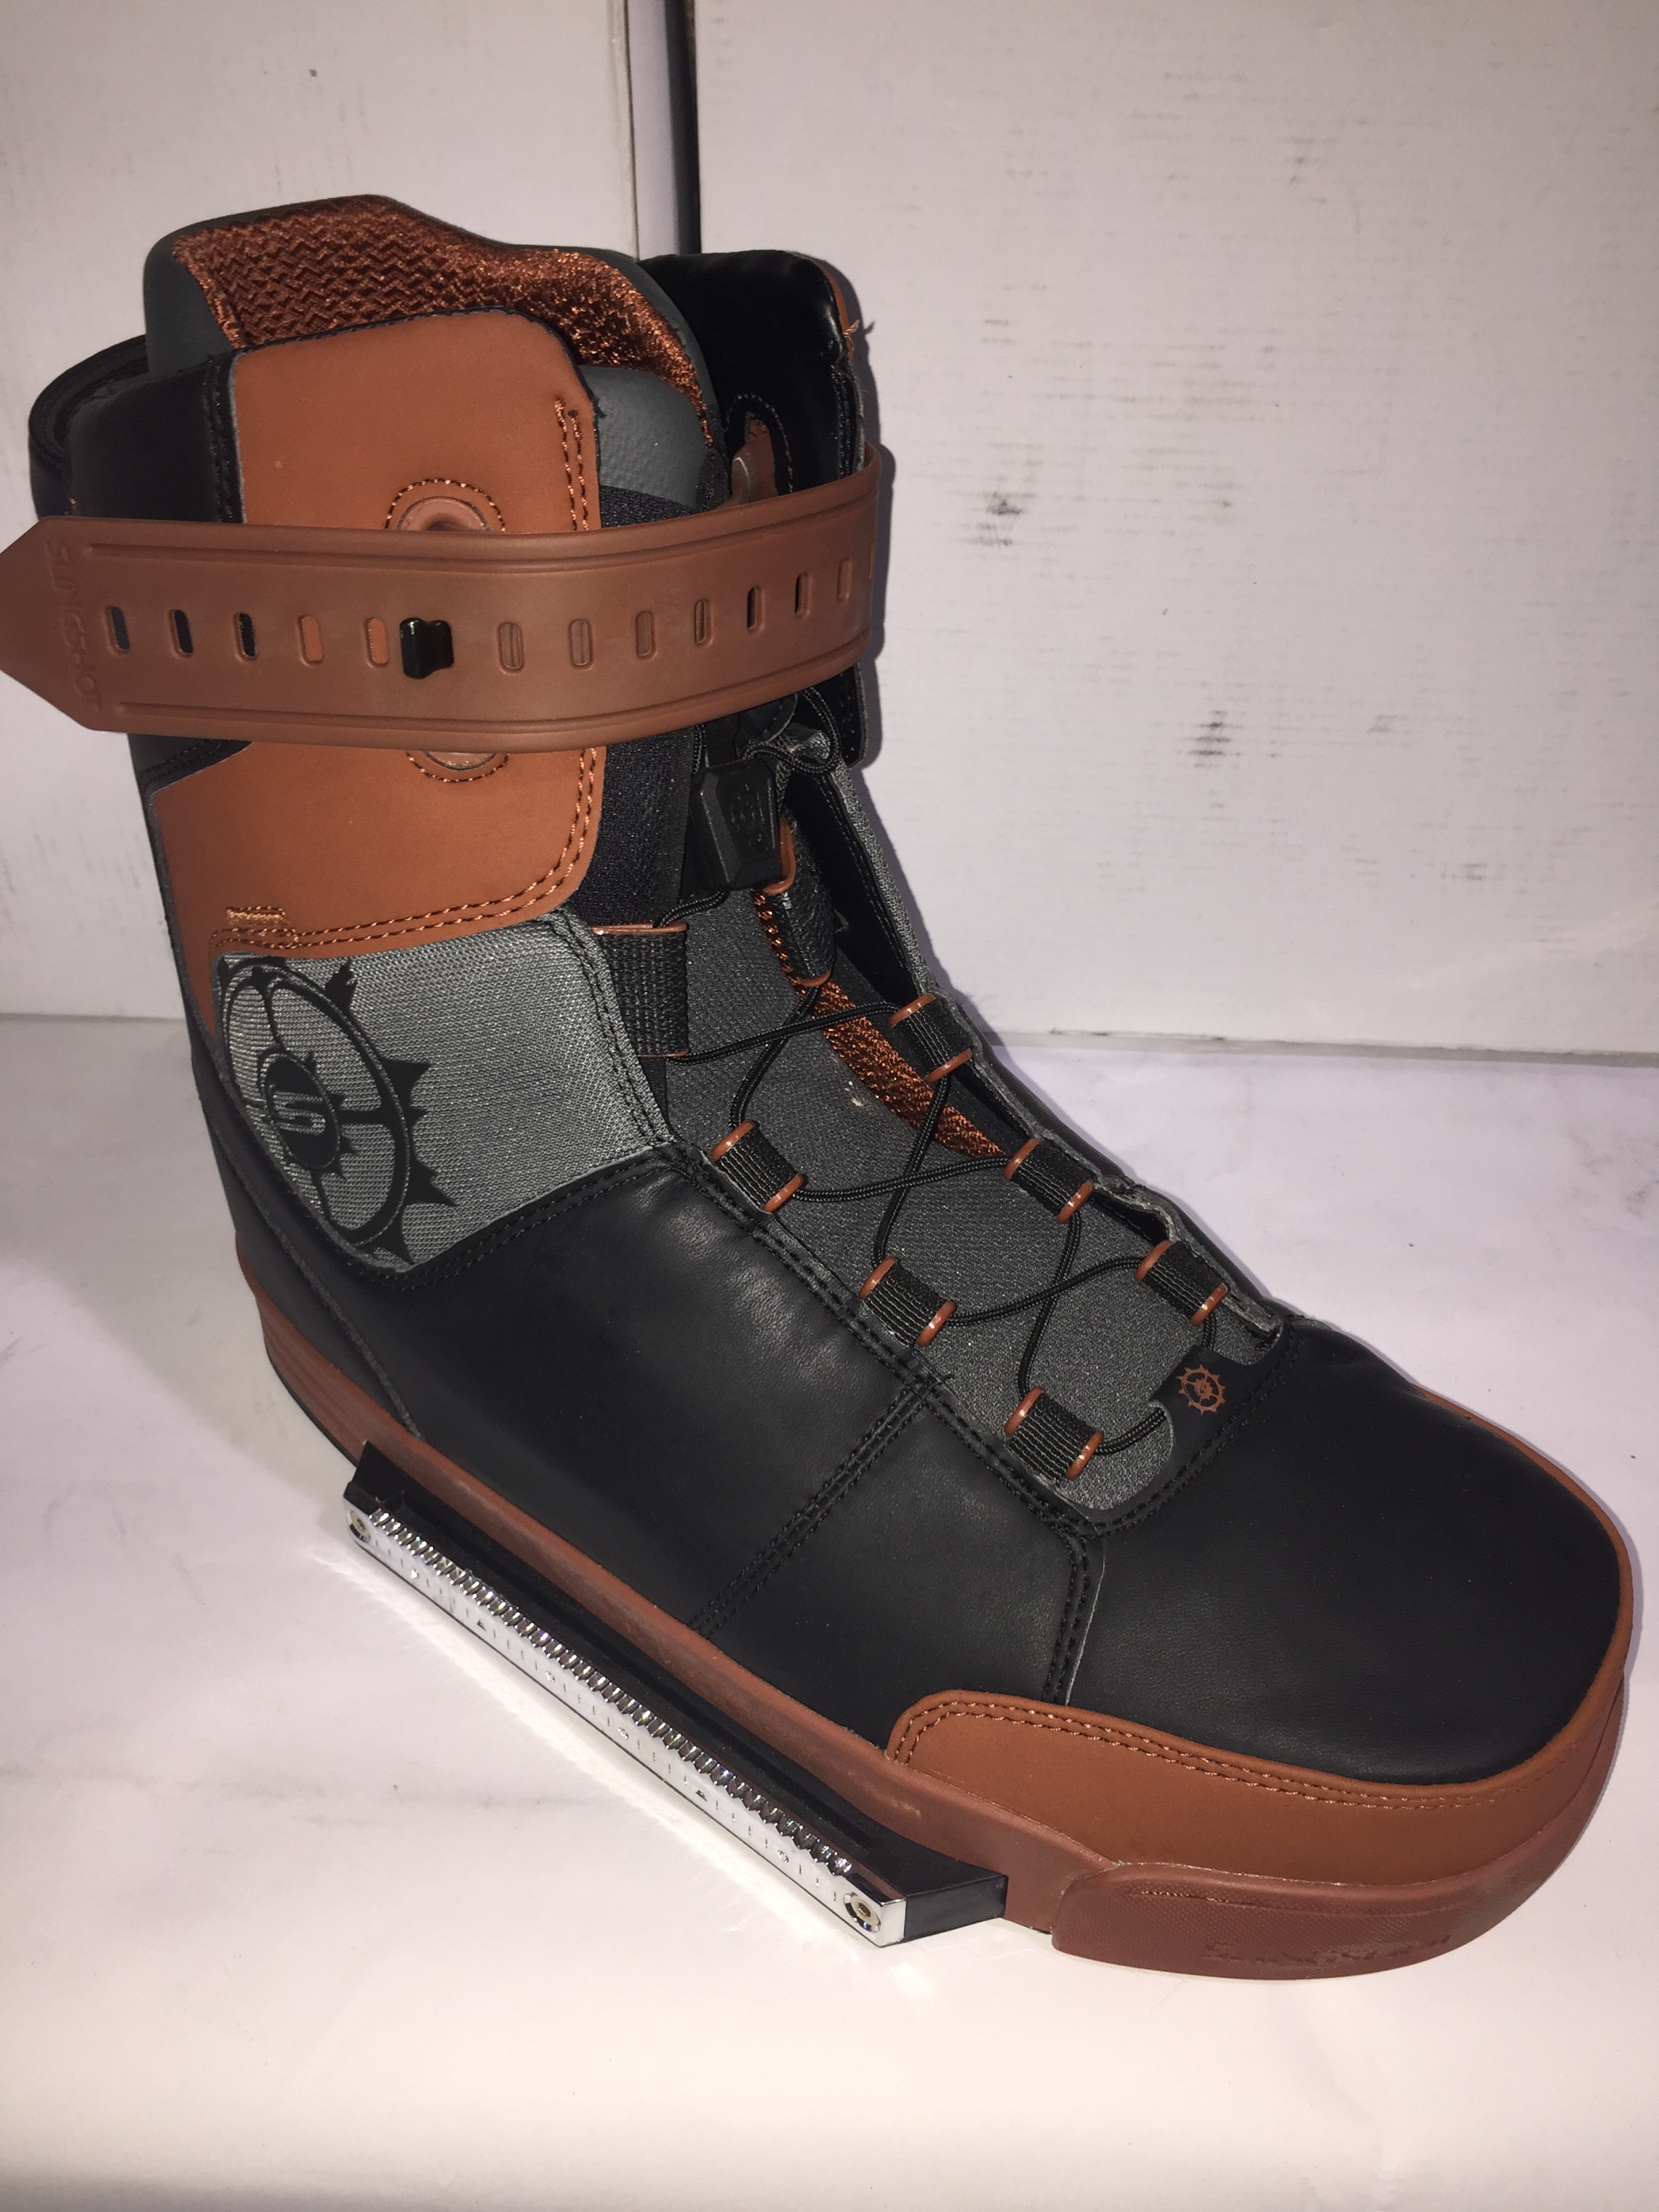 SLINGSHOT Rad Wakeboard Boots - Size 12 - Brand New - RRP $699 95